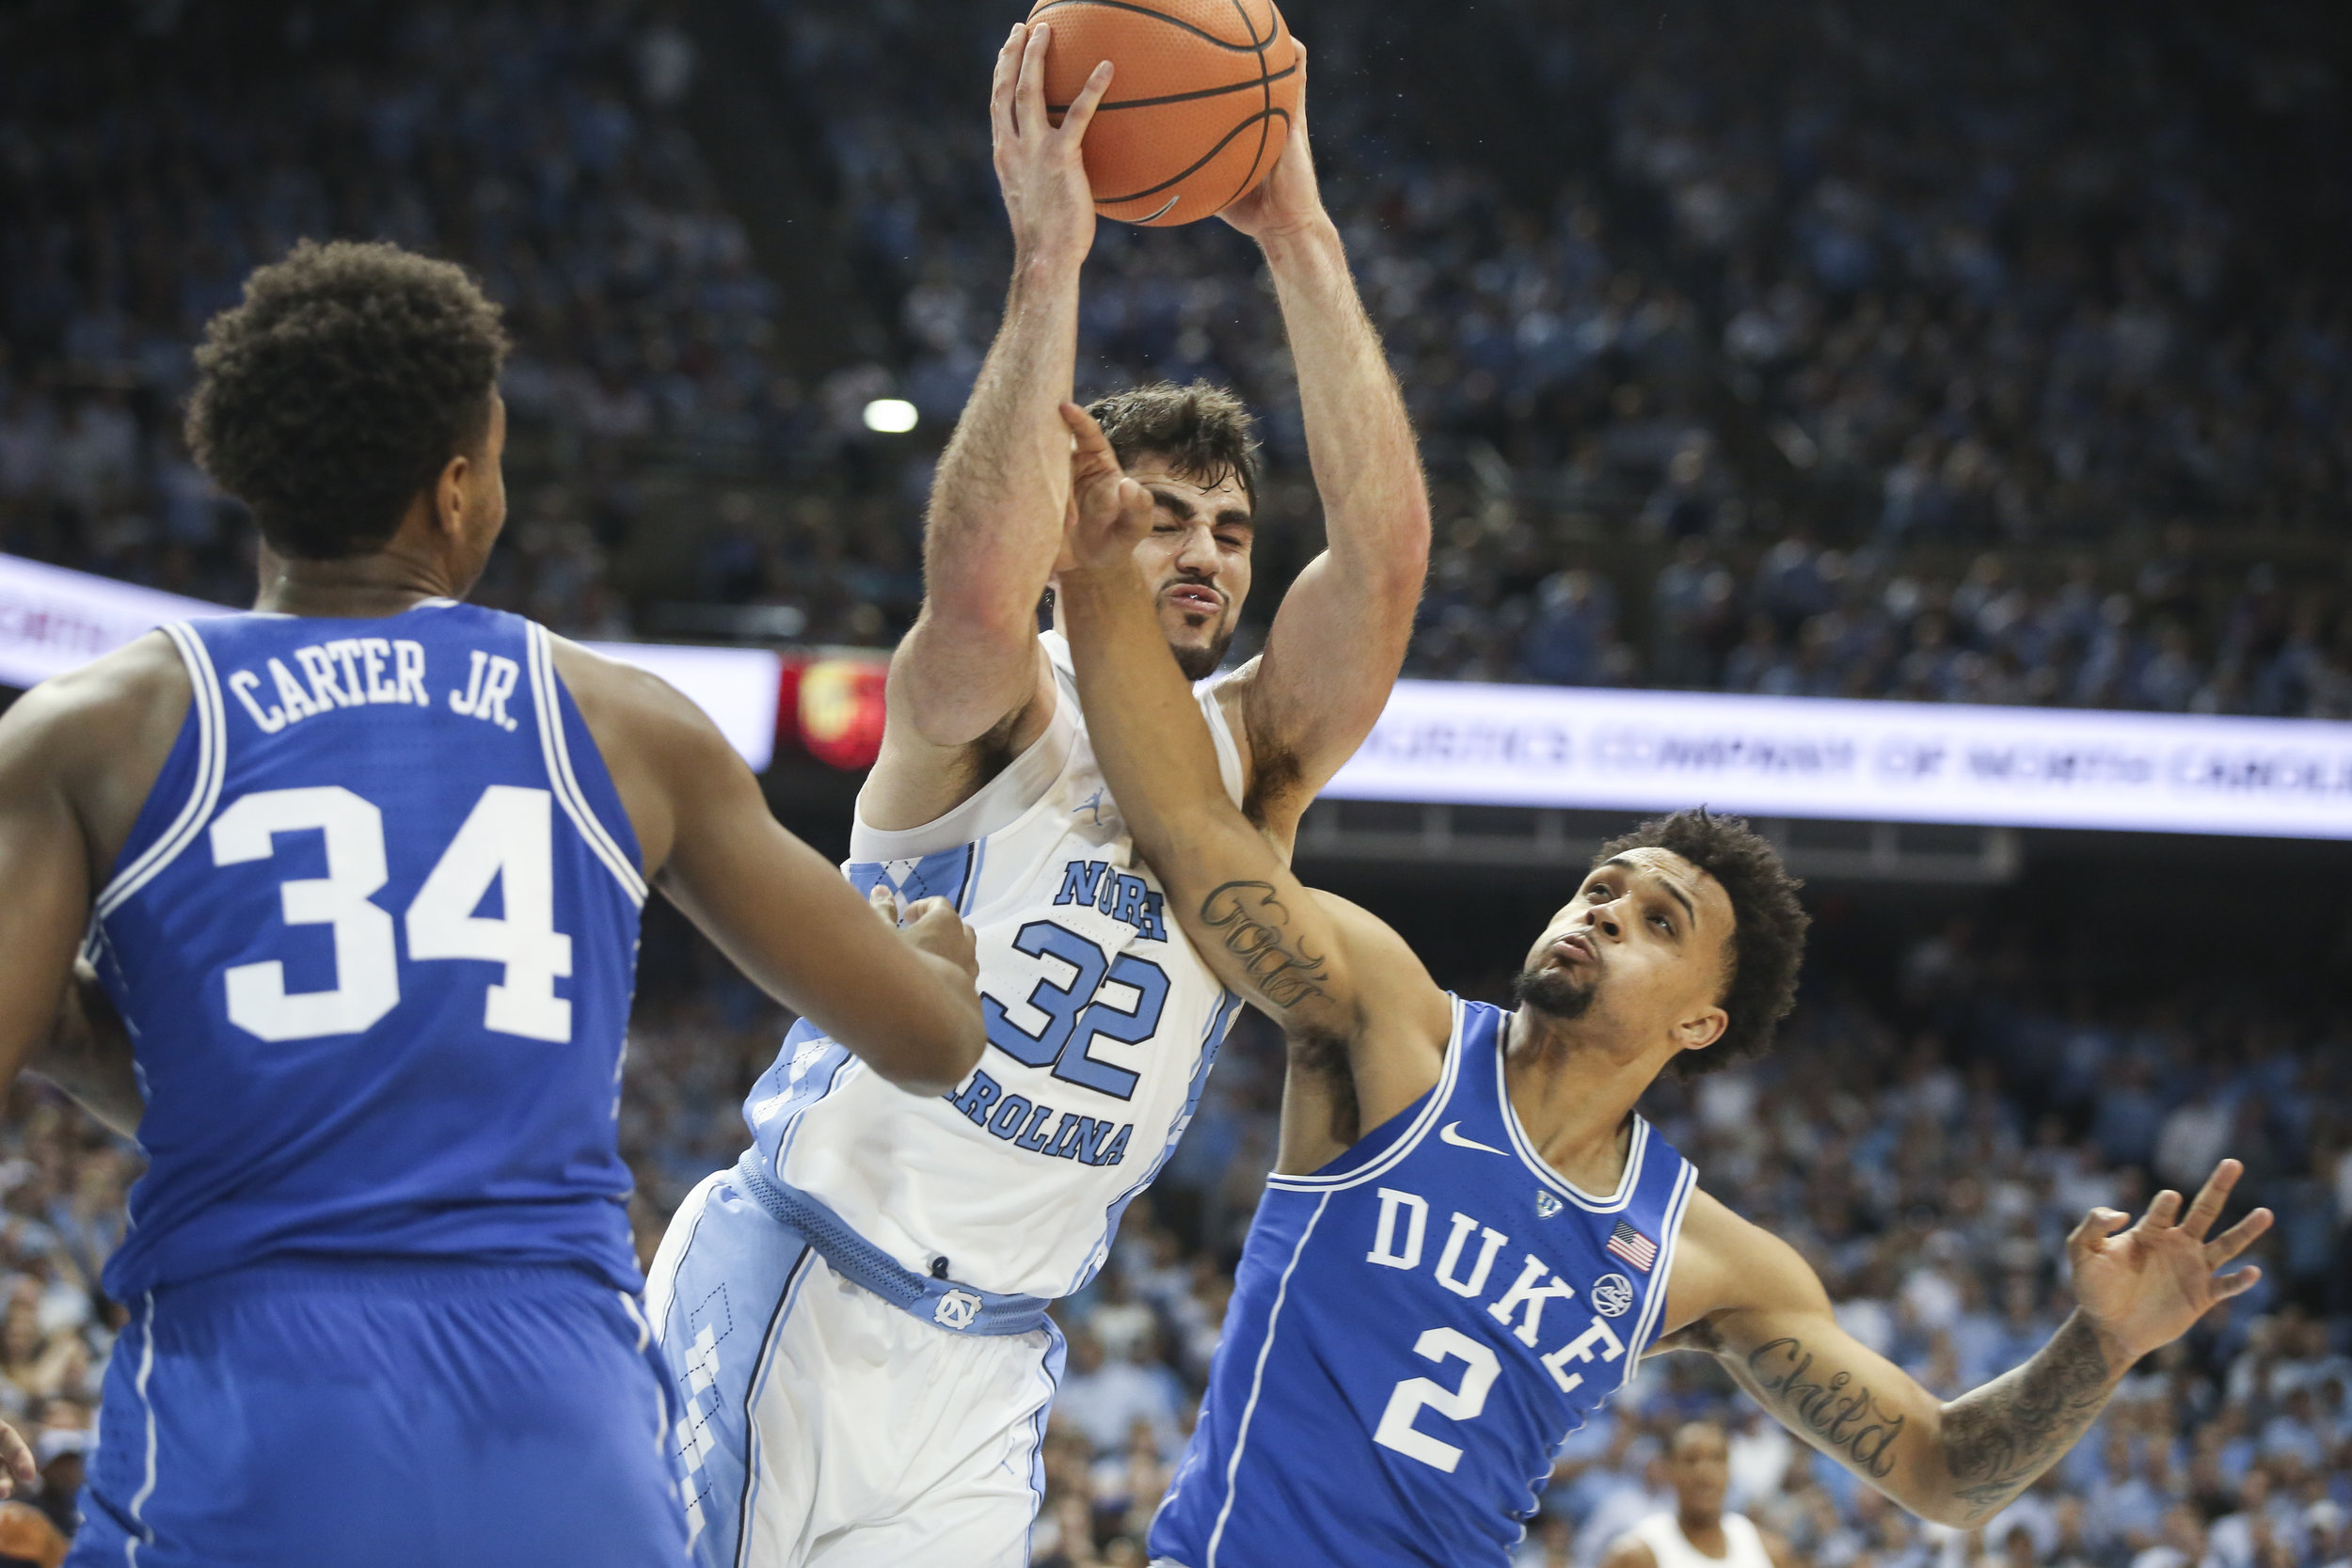 UNC's Luke Maye is fouled by Duke's Tre Duval during the game at Dean Smith Center.